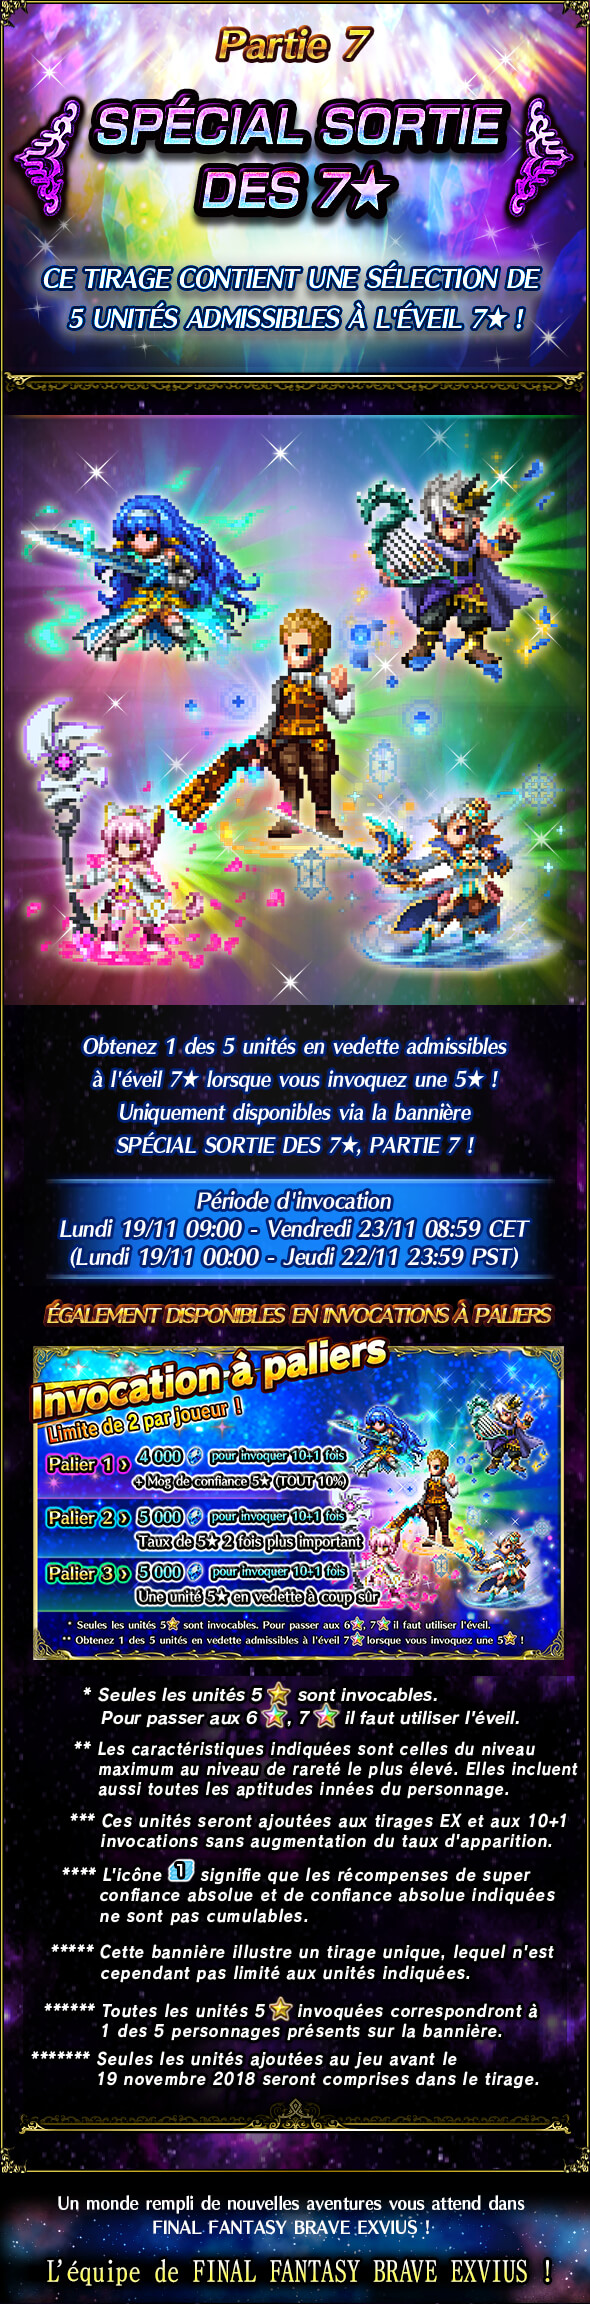 Invocations du moment - FFBE - Speciales sortie des 7* (lot 4) - du 19/11 au 26/11/18 201811137starbatch7